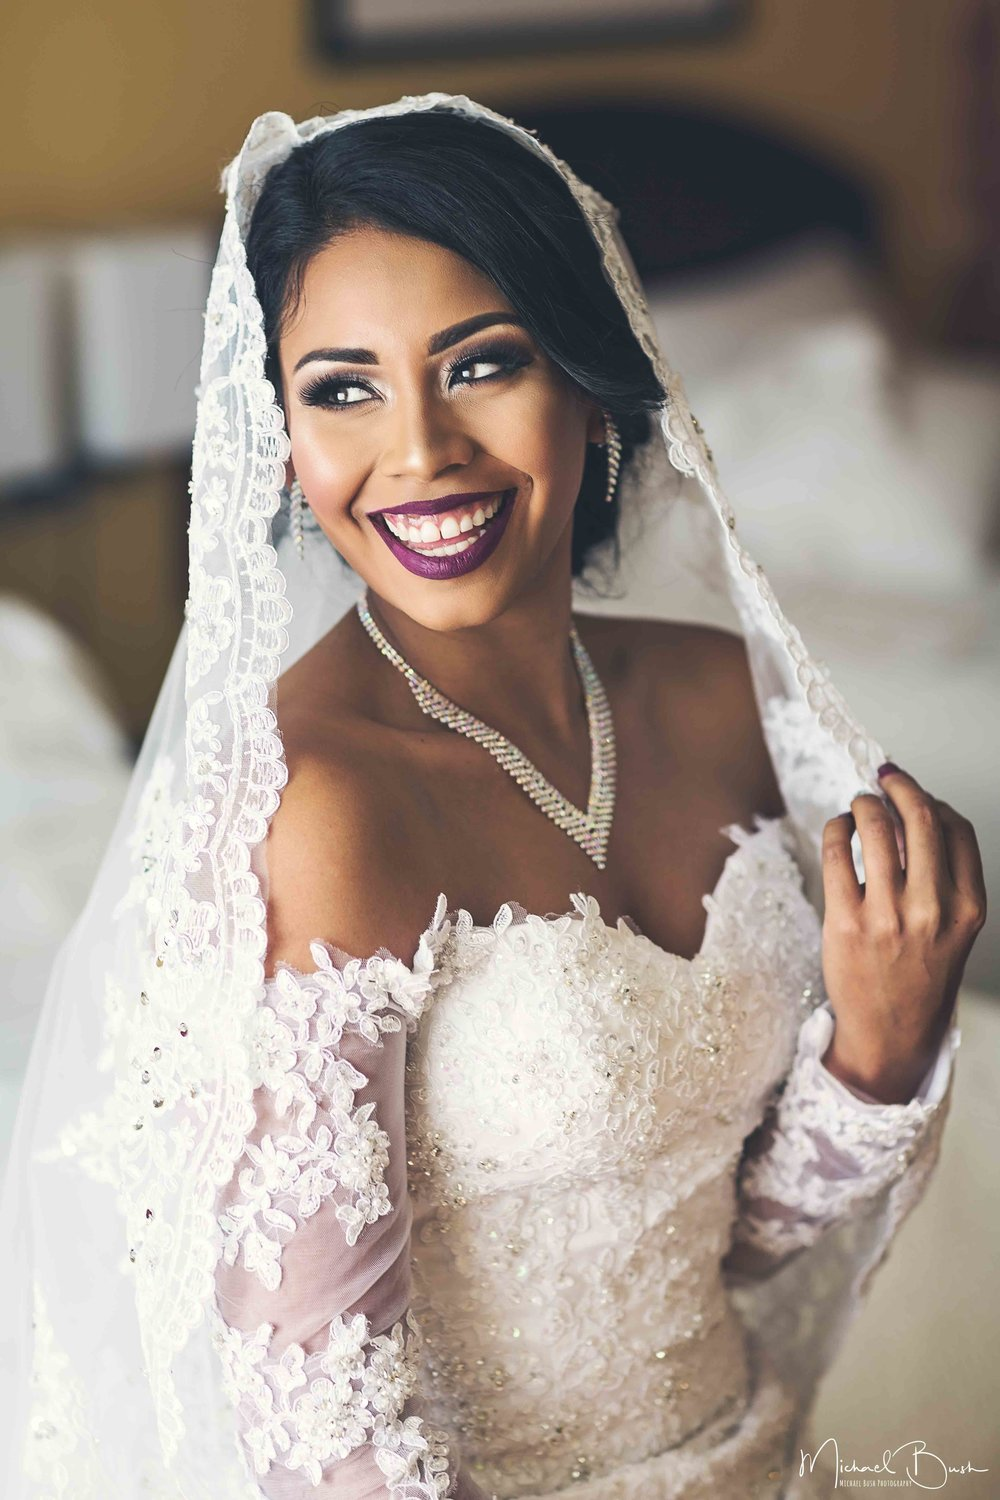 Wedding-Details-Bride-Fort Worth-colors-Getting Ready-MUA-brides-allsmiles-love-bridals.jpg